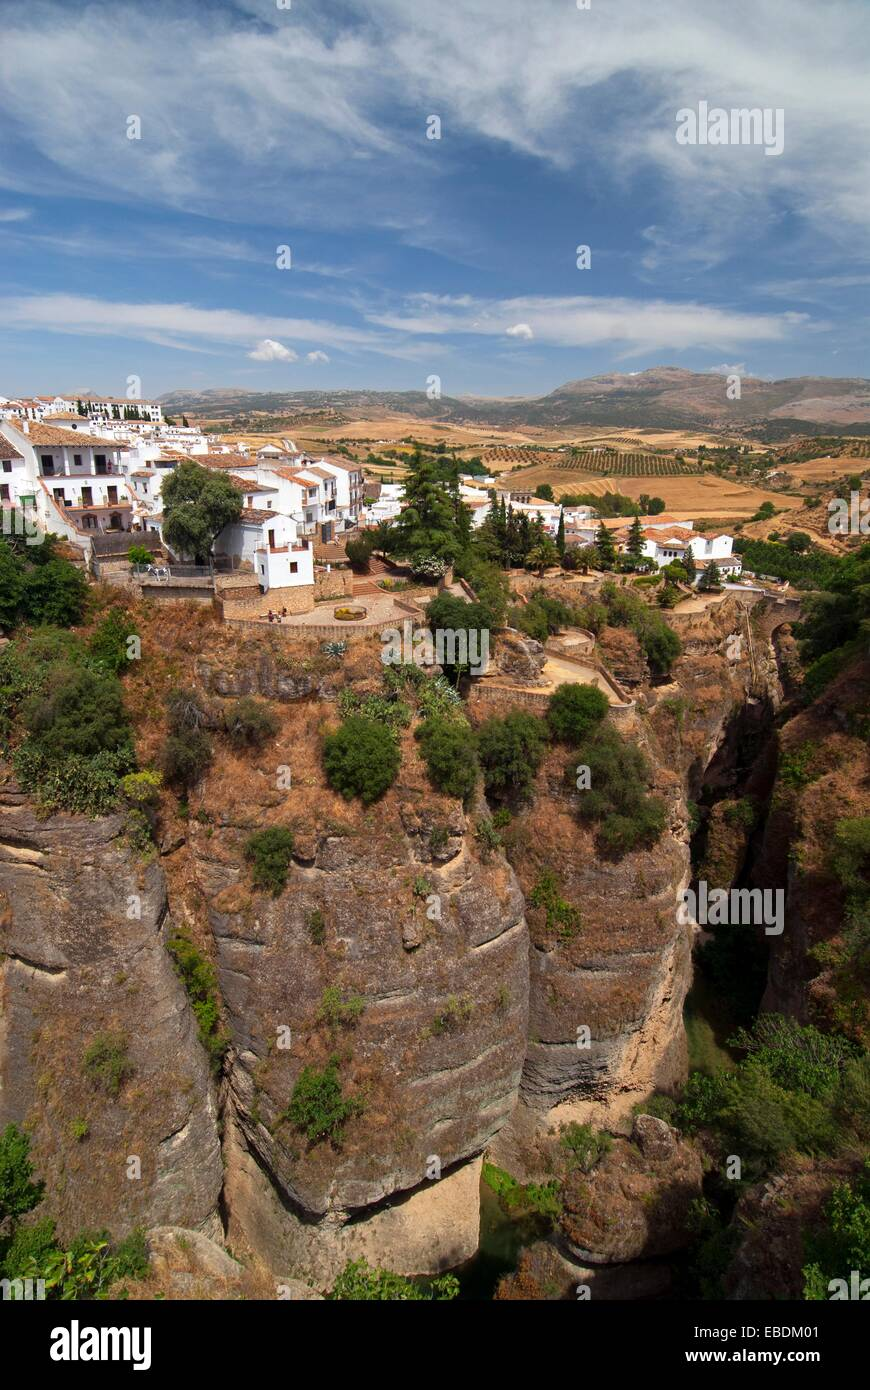 landscape of Andalusia, Ronda, inland, Spain - Stock Image